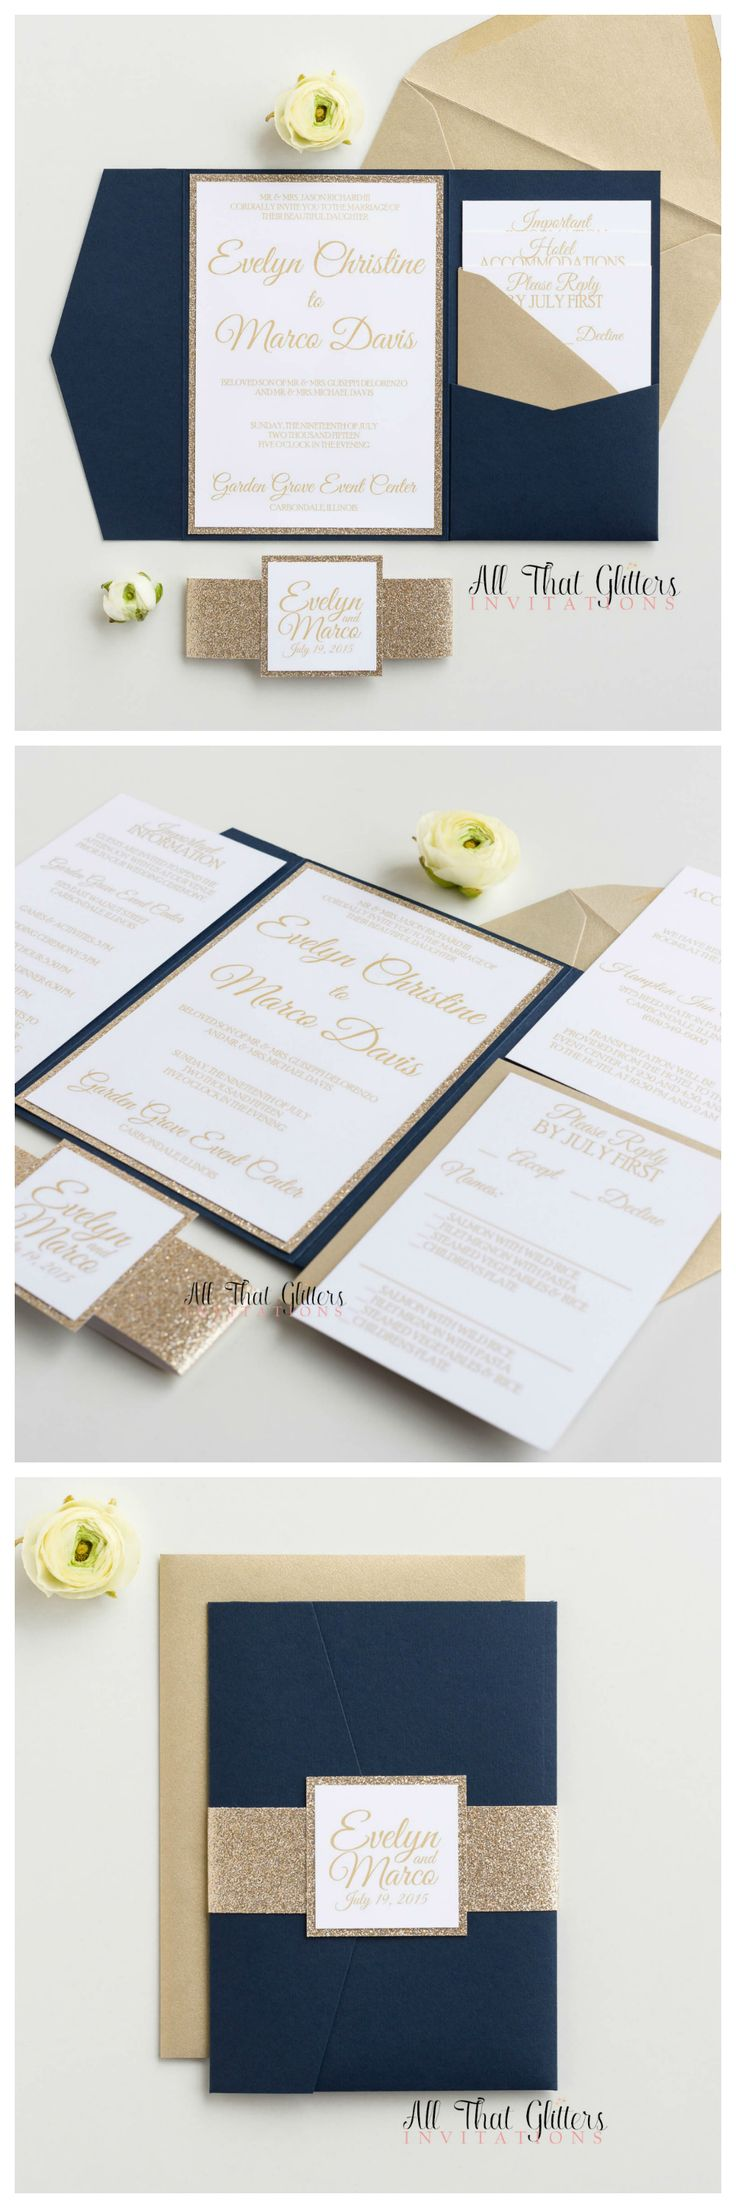 2124 Best Wedding Invitations All That Glitters Invitations